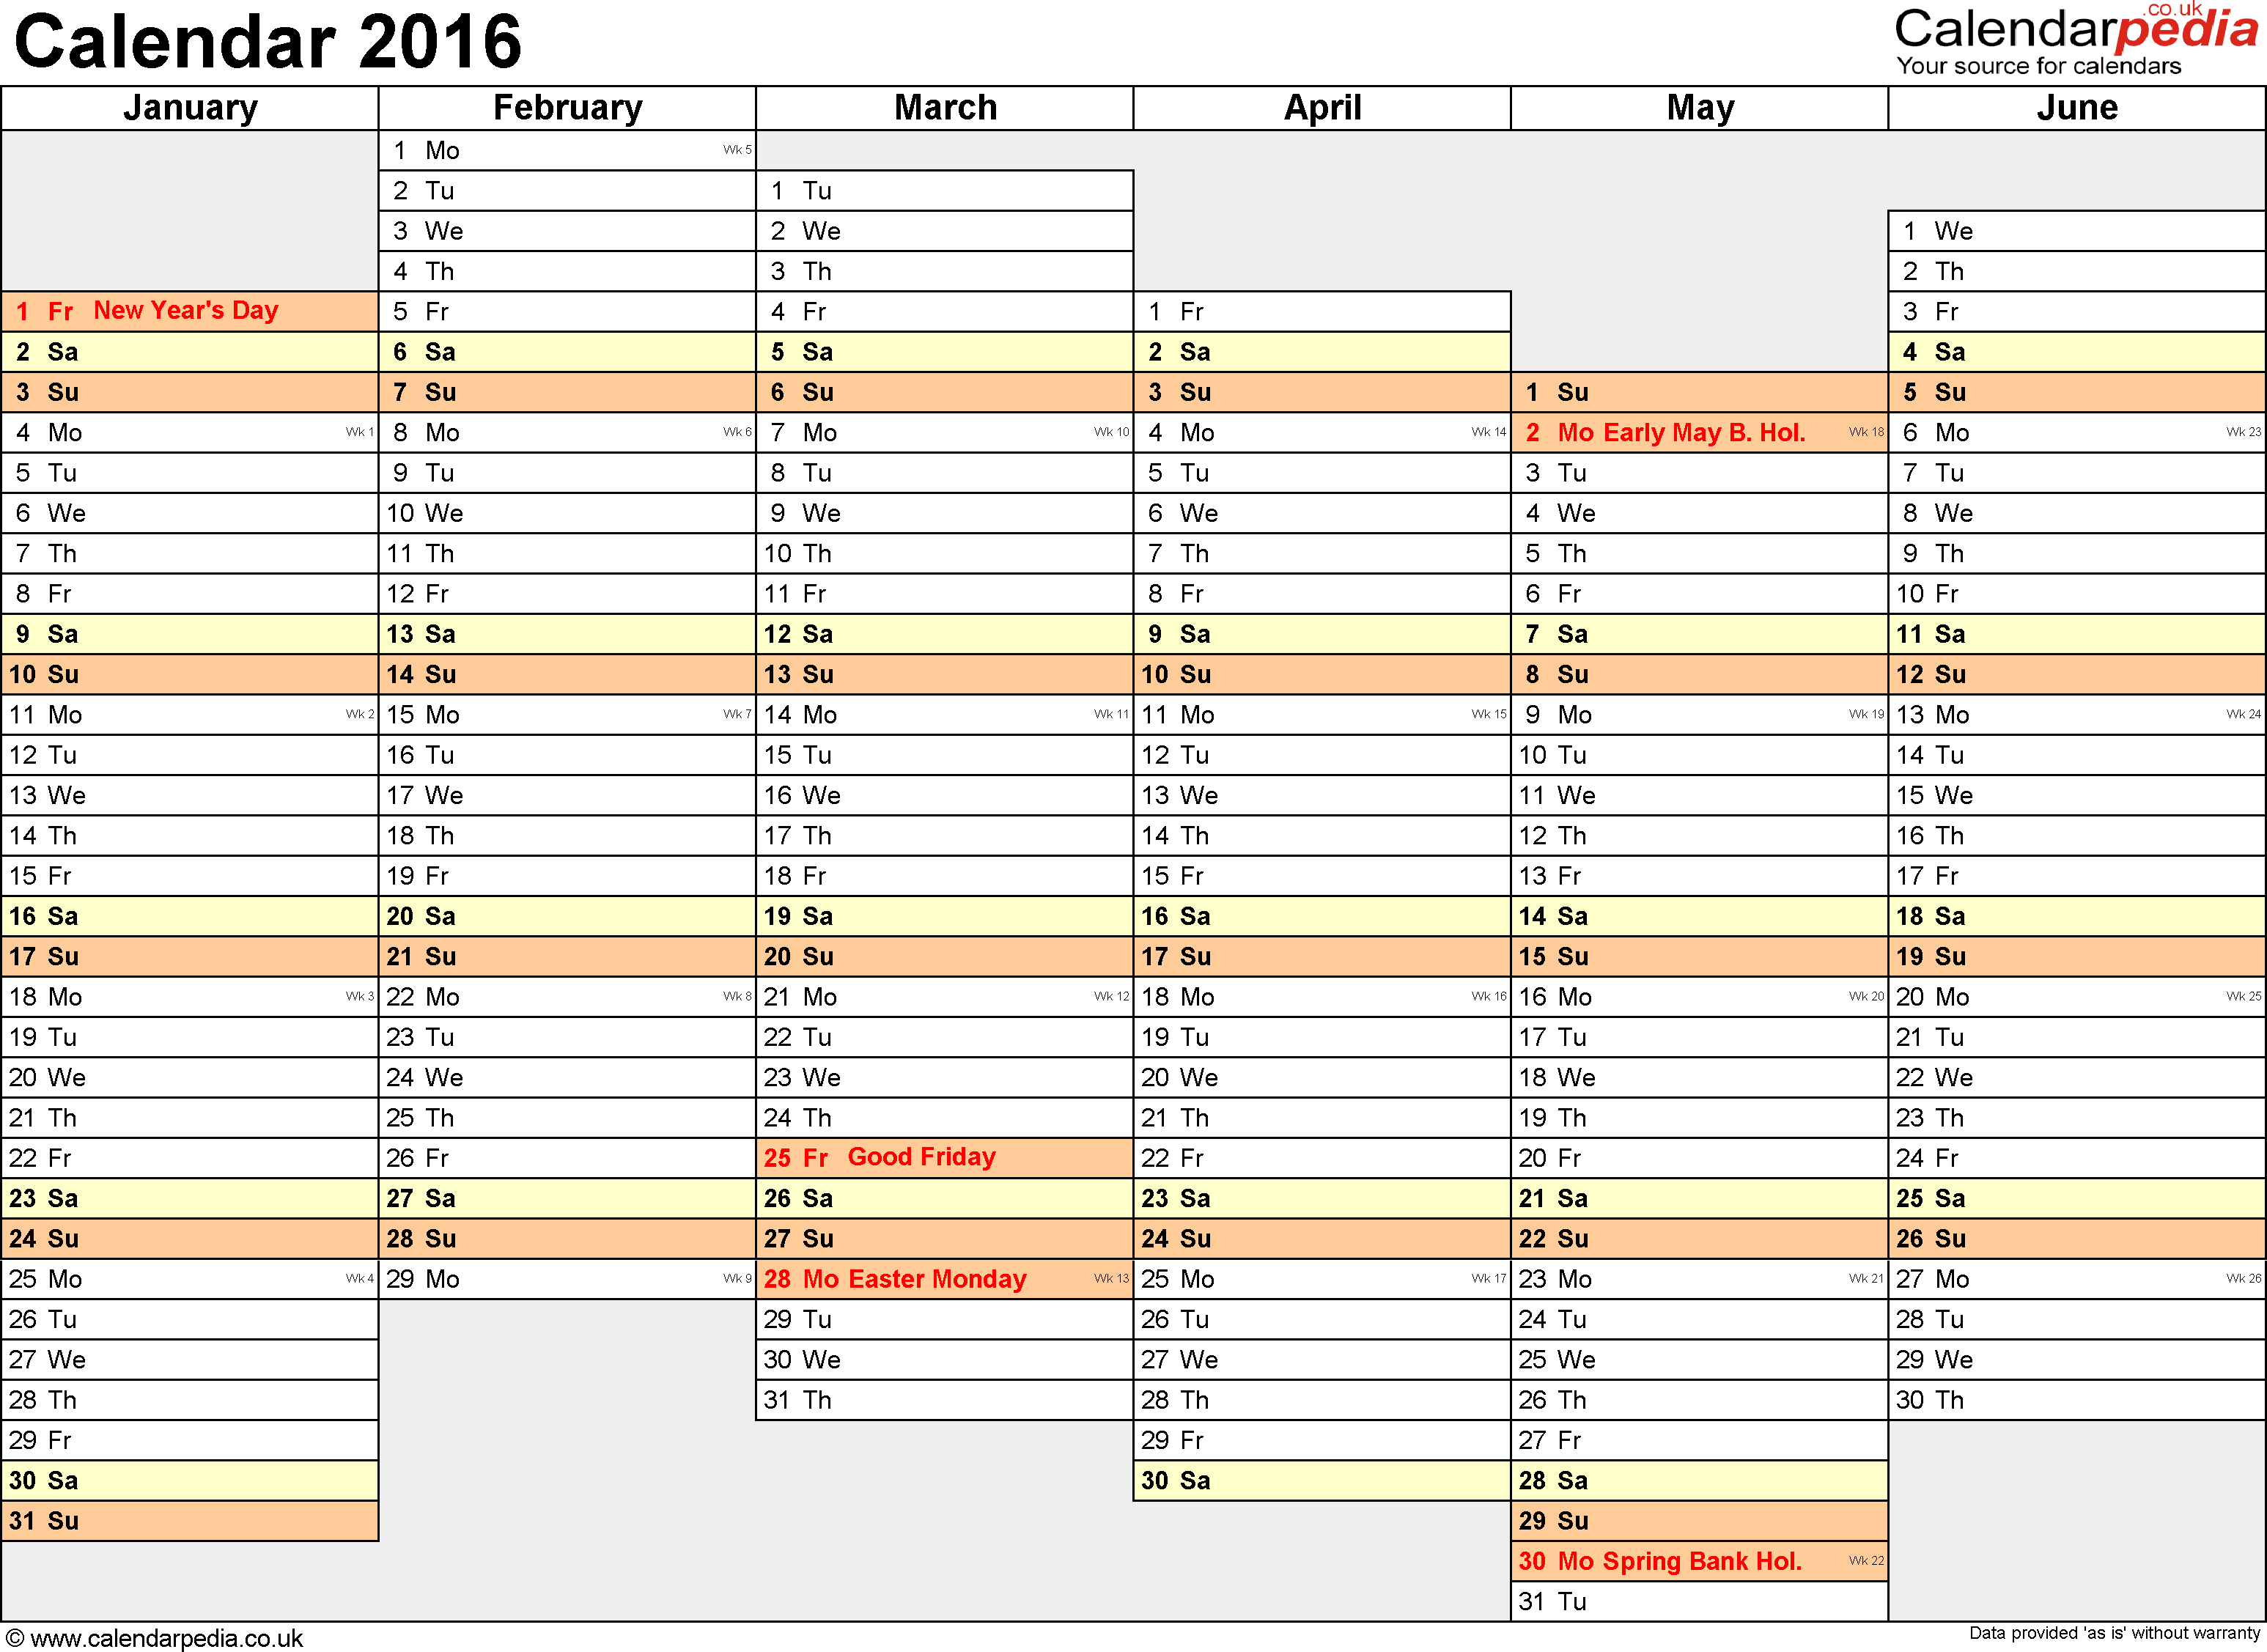 Template 4: Yearly calendar 2016 as Excel template, landscape orientation, A4, 2 pages, months horizontally, days vertically, days of the week in line, with UK bank holidays and week numbers